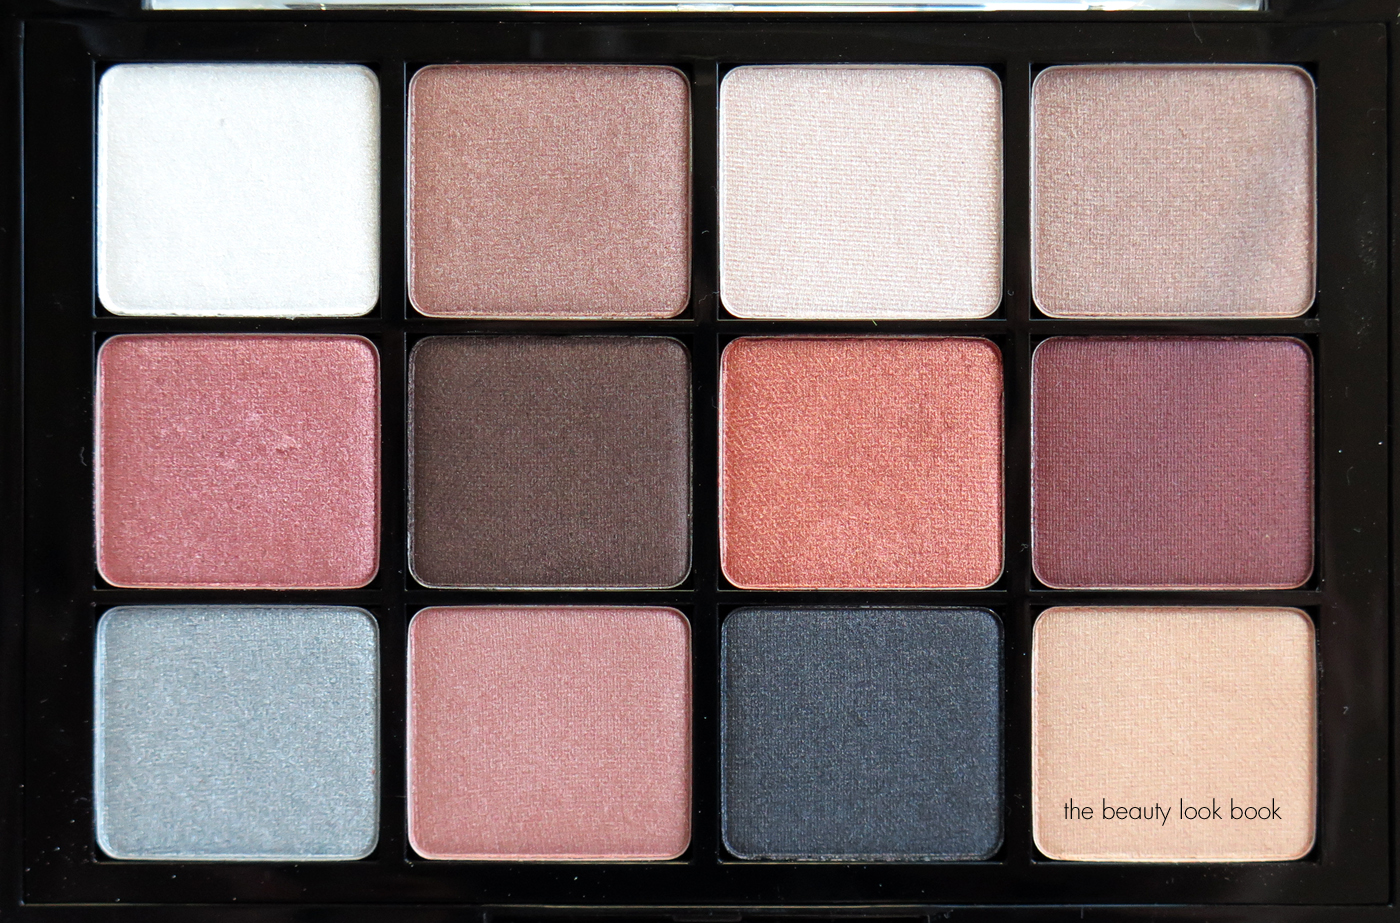 Viseart Makeup Palette Saubhaya 06 Paris Nudes Indoor Natural Light No Flash You Can See The Base And Undertone Better